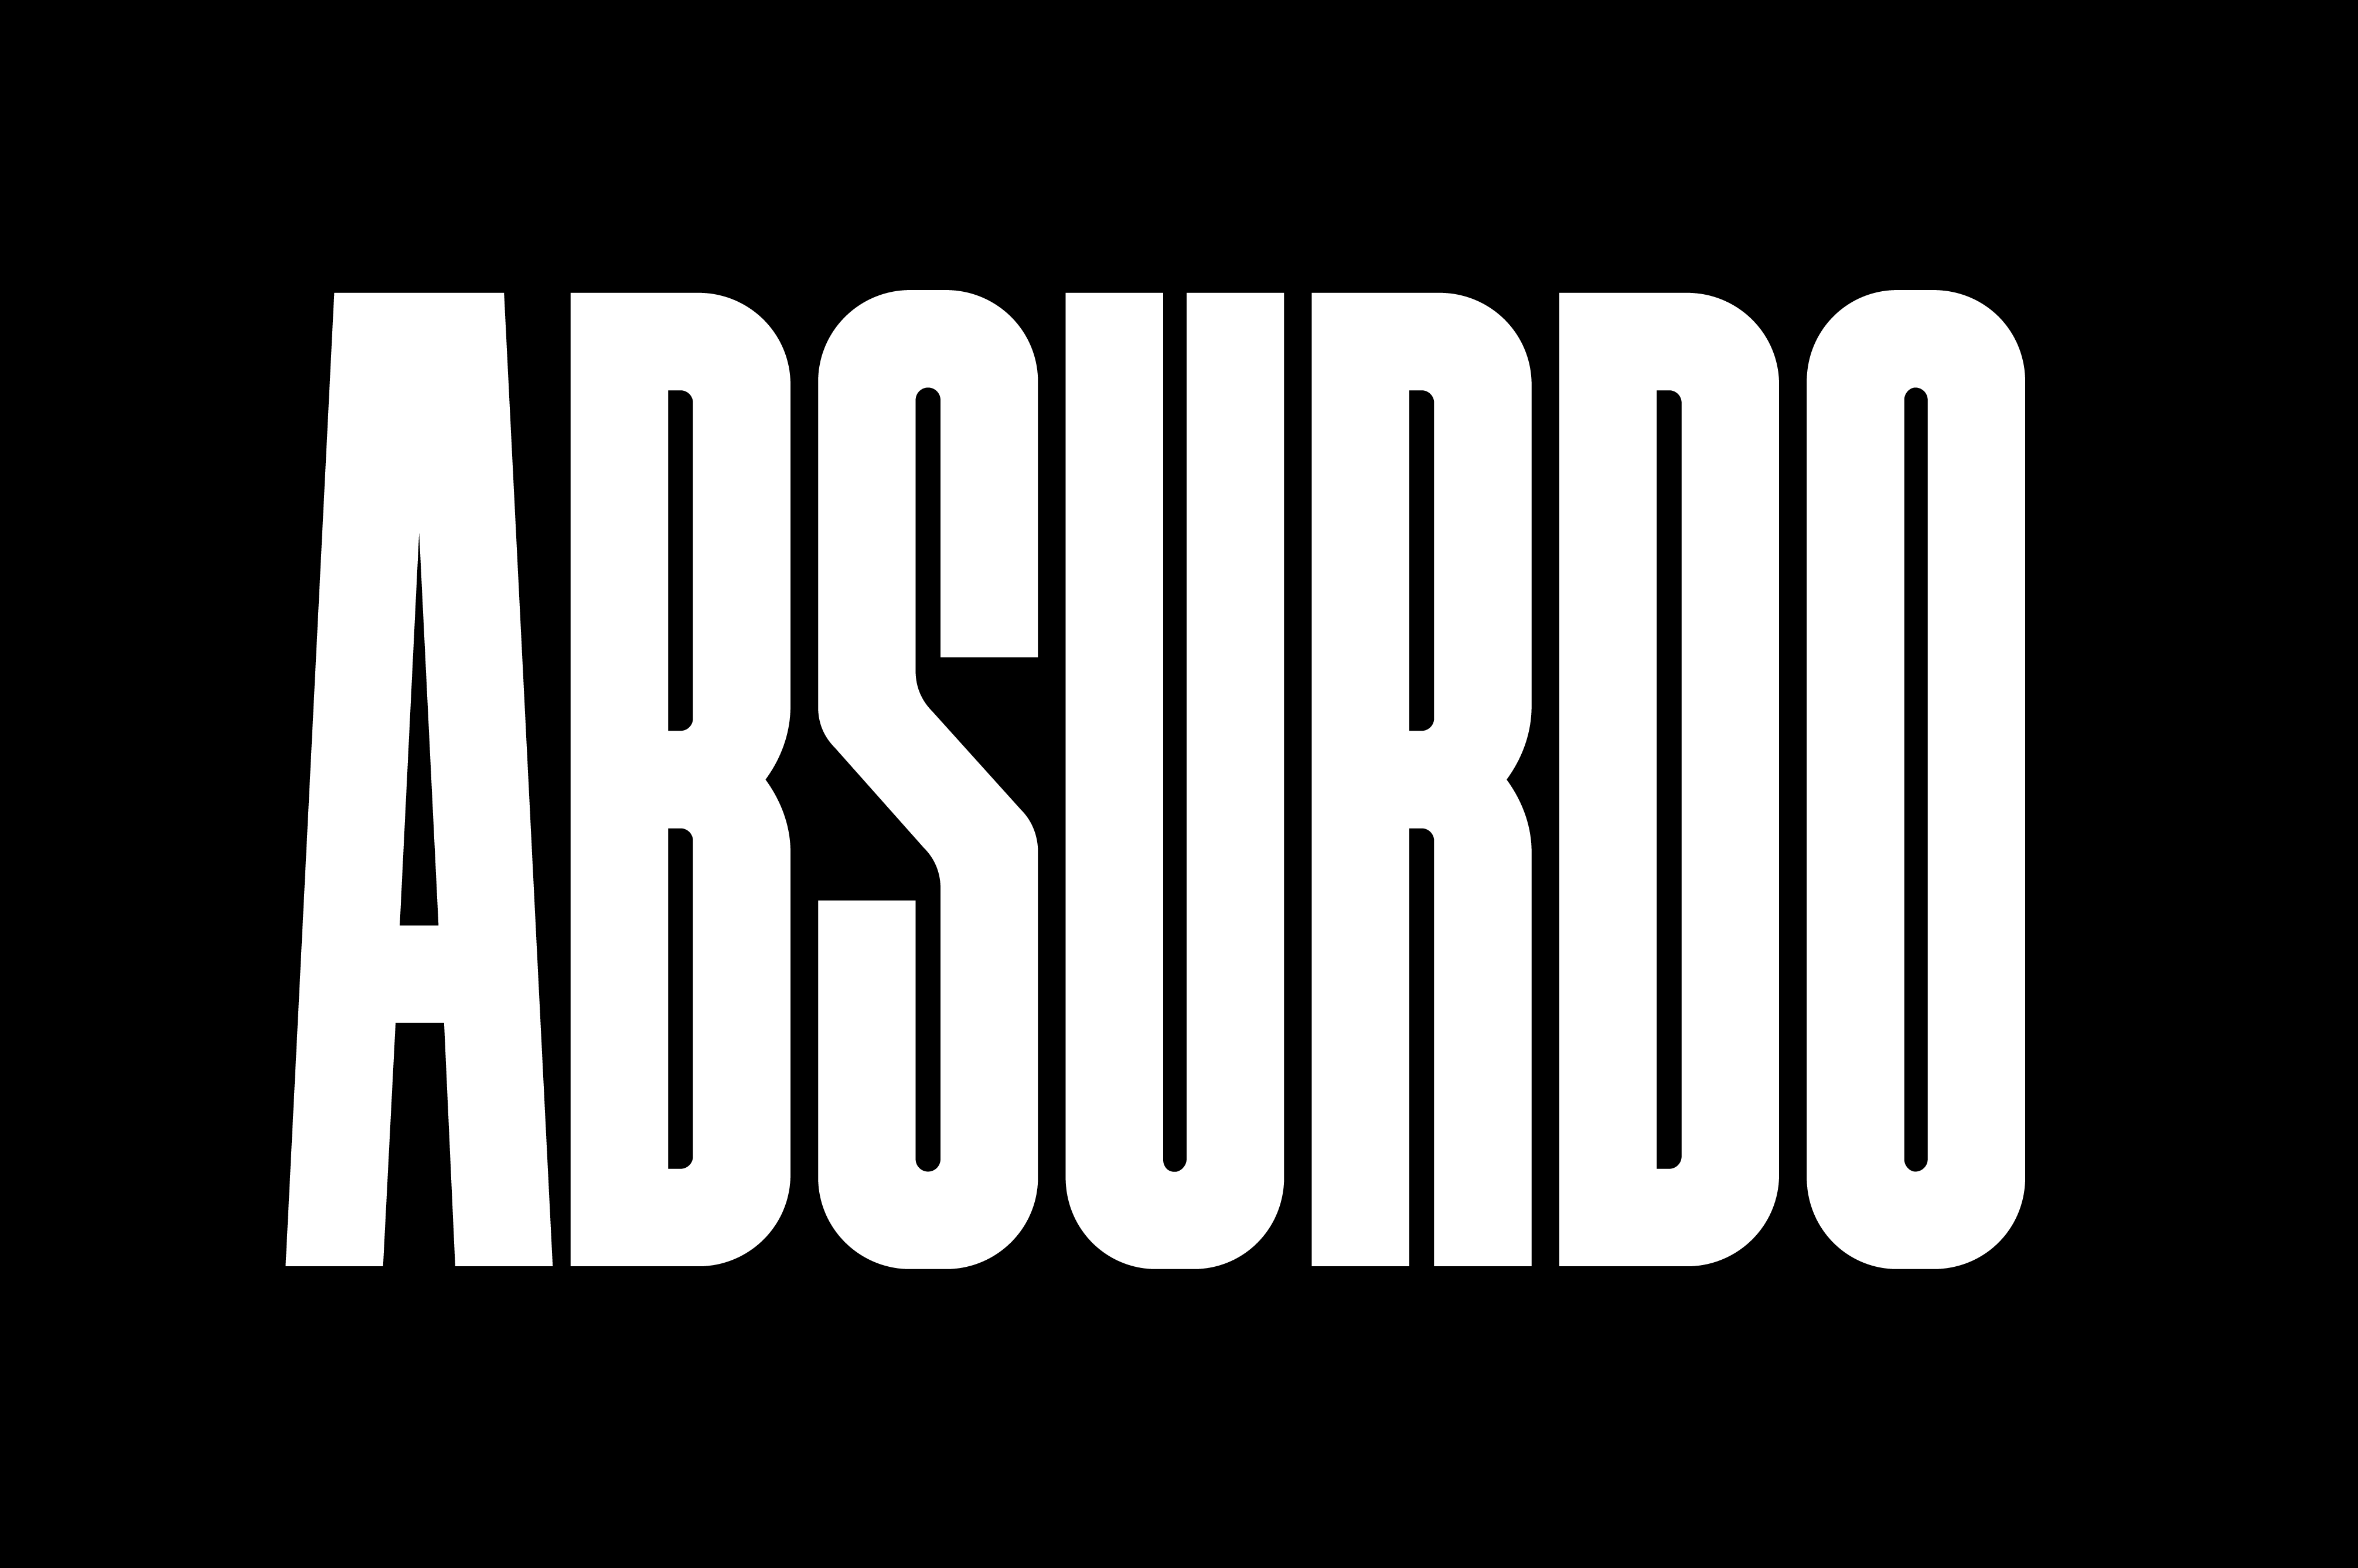 RS Absurdo typeface